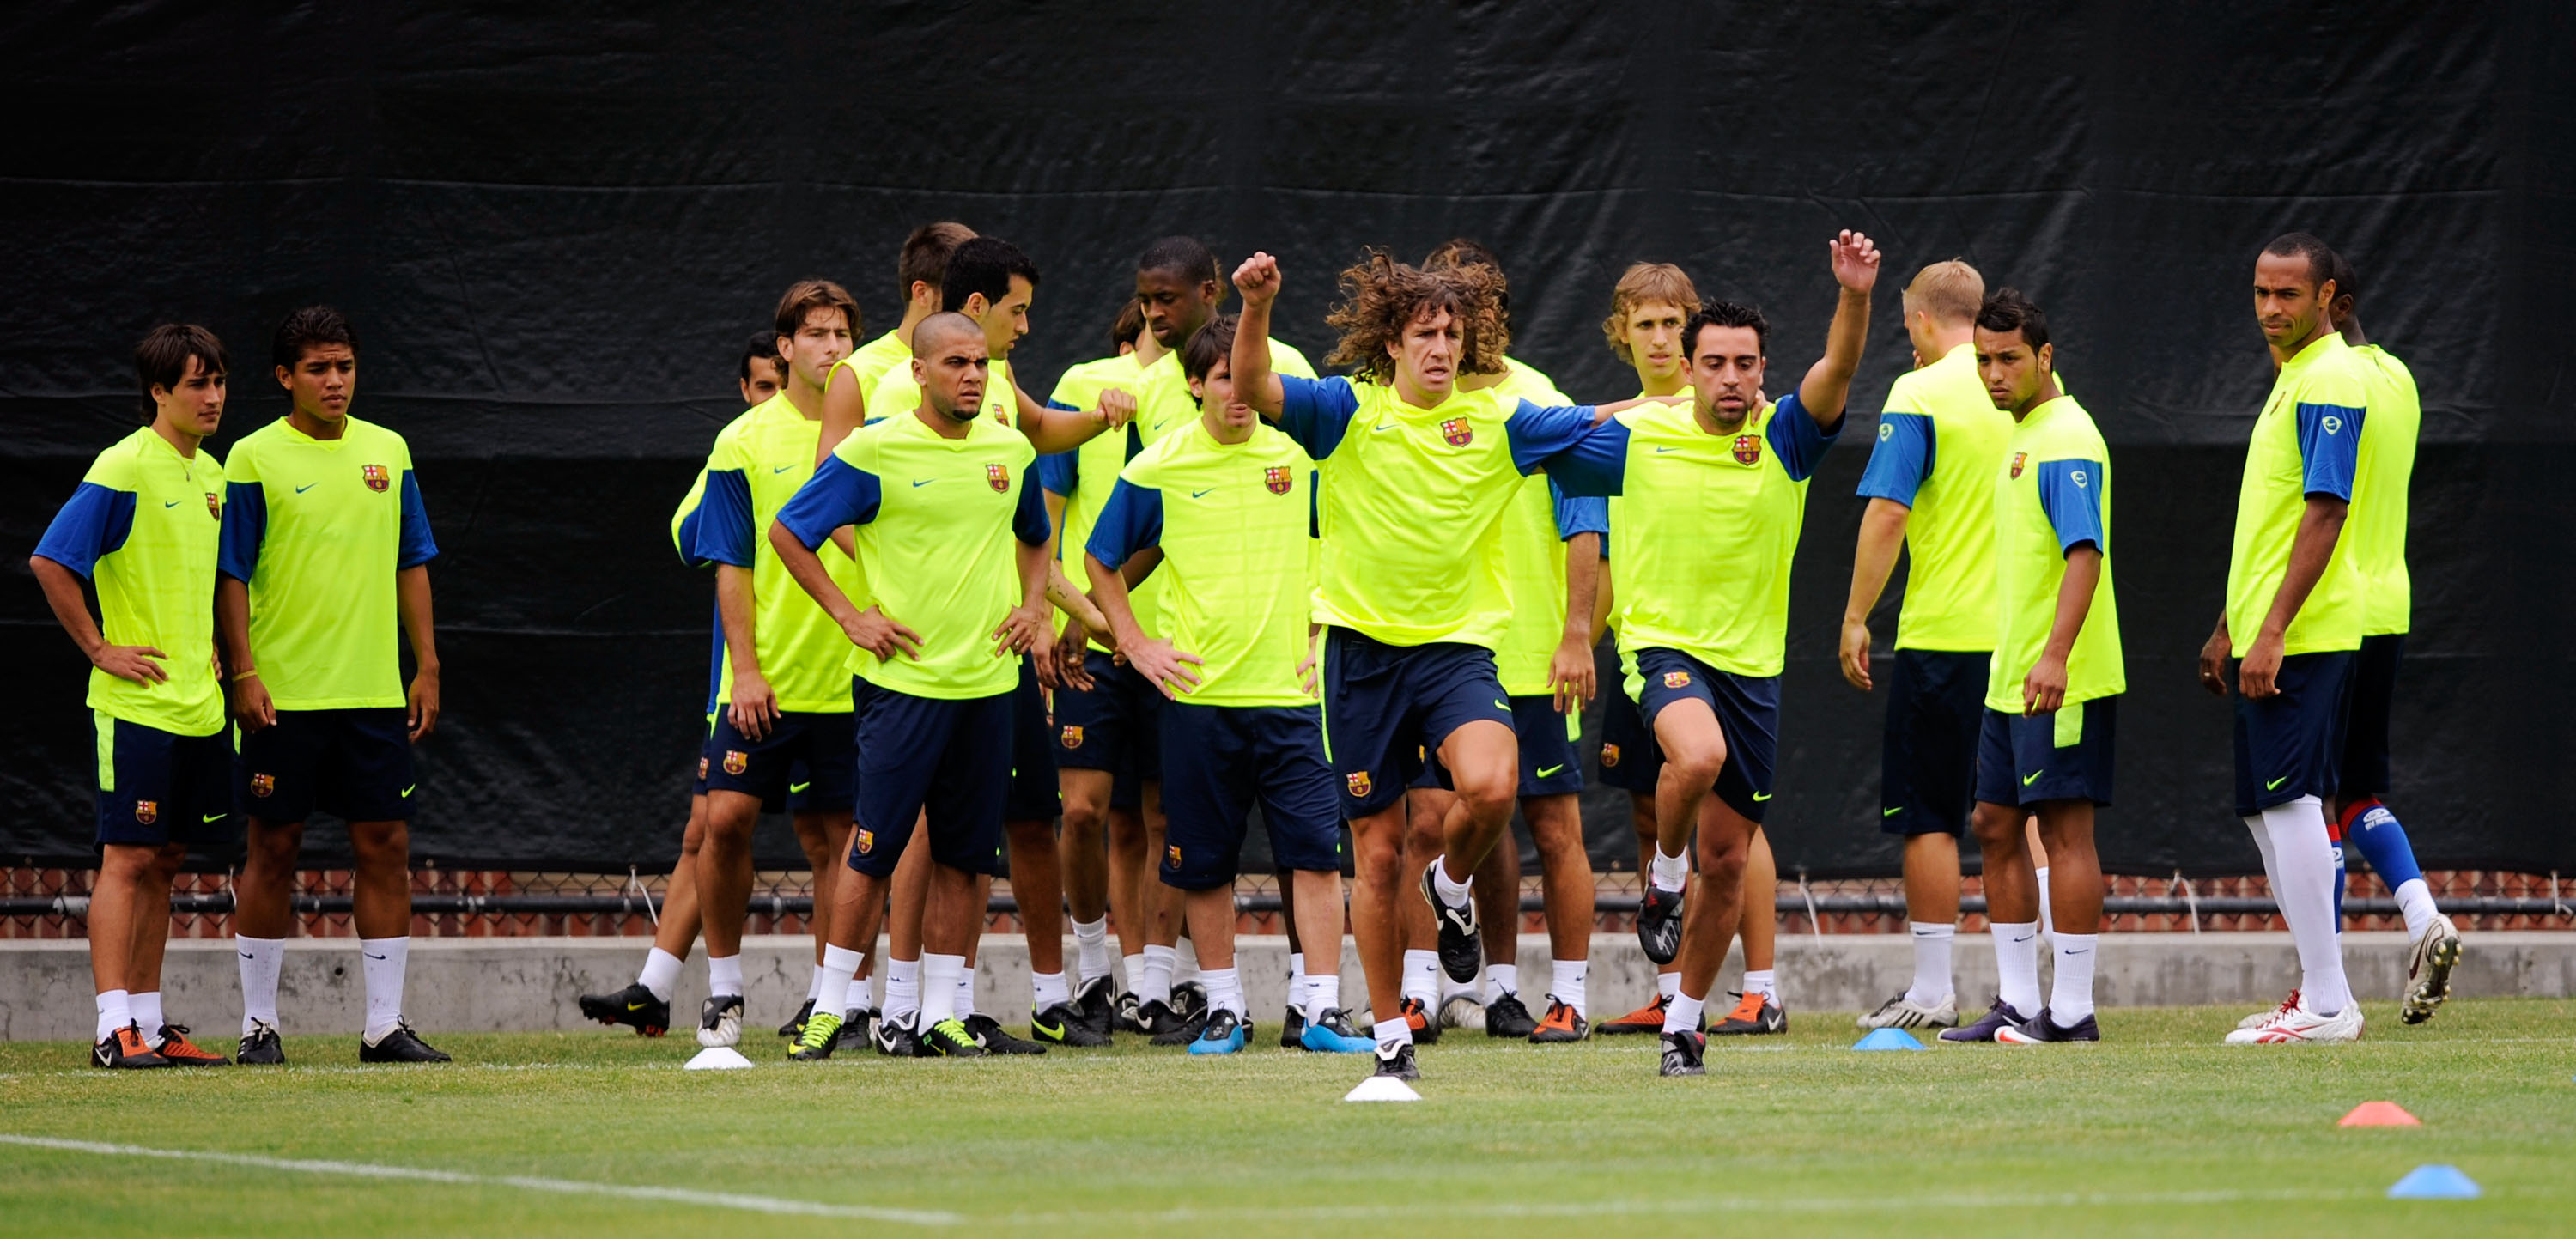 LOS ANGELES, CA - JULY 30:  FC Barcelona during a practice session at the UCLA campus on July 30, 2009 in Los Angeles, California.  FC Bracelona will play a friendly soccer match against the Los Angeles Galaxy on August 1, 2009, at the Rose Bowl in Pasade